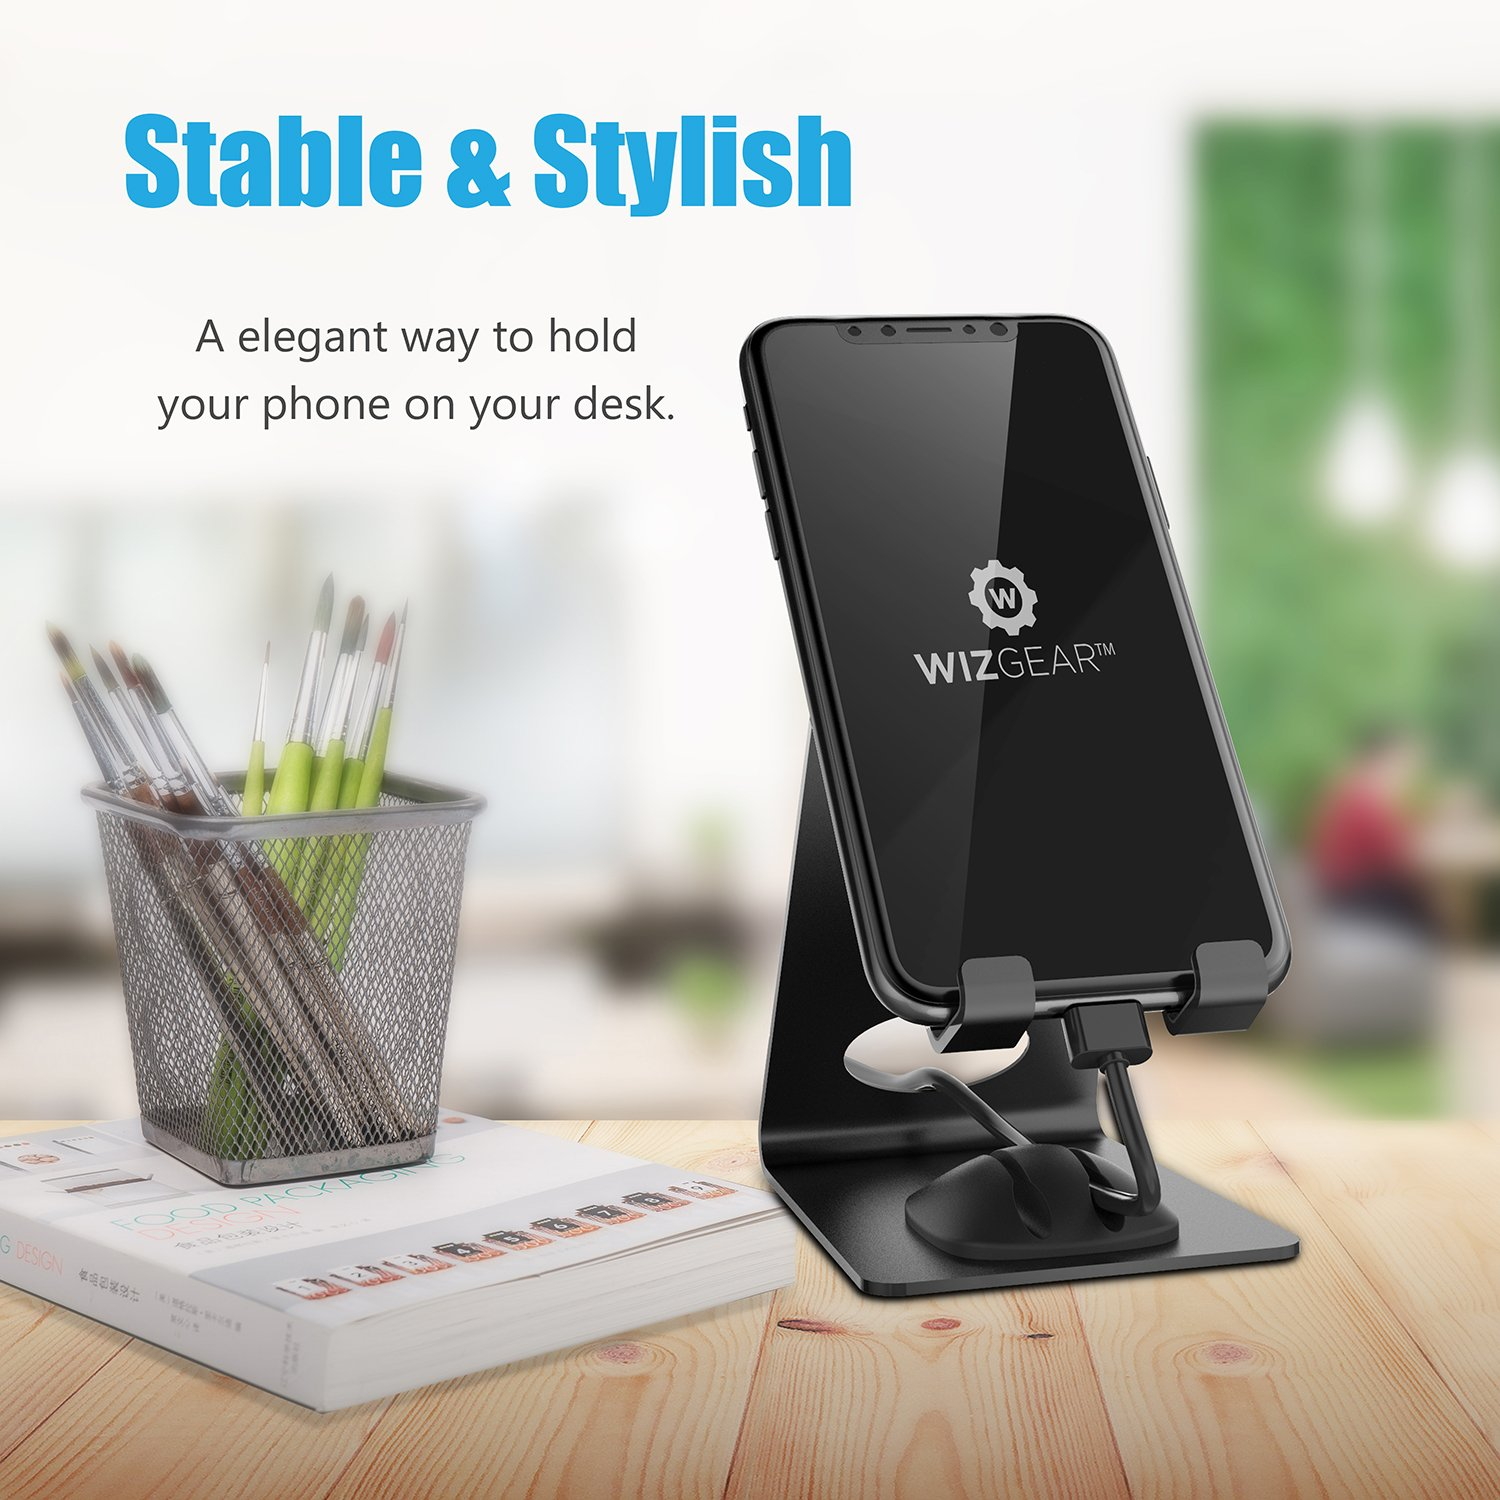 Cell Phone Stand, WizGear Premium Phone Holder For iPhones, Android Smartphones & Mini Tablets –Sturdy Metal Phone Stand For Desk With Smart Cord Holder System by WizGear (Image #2)